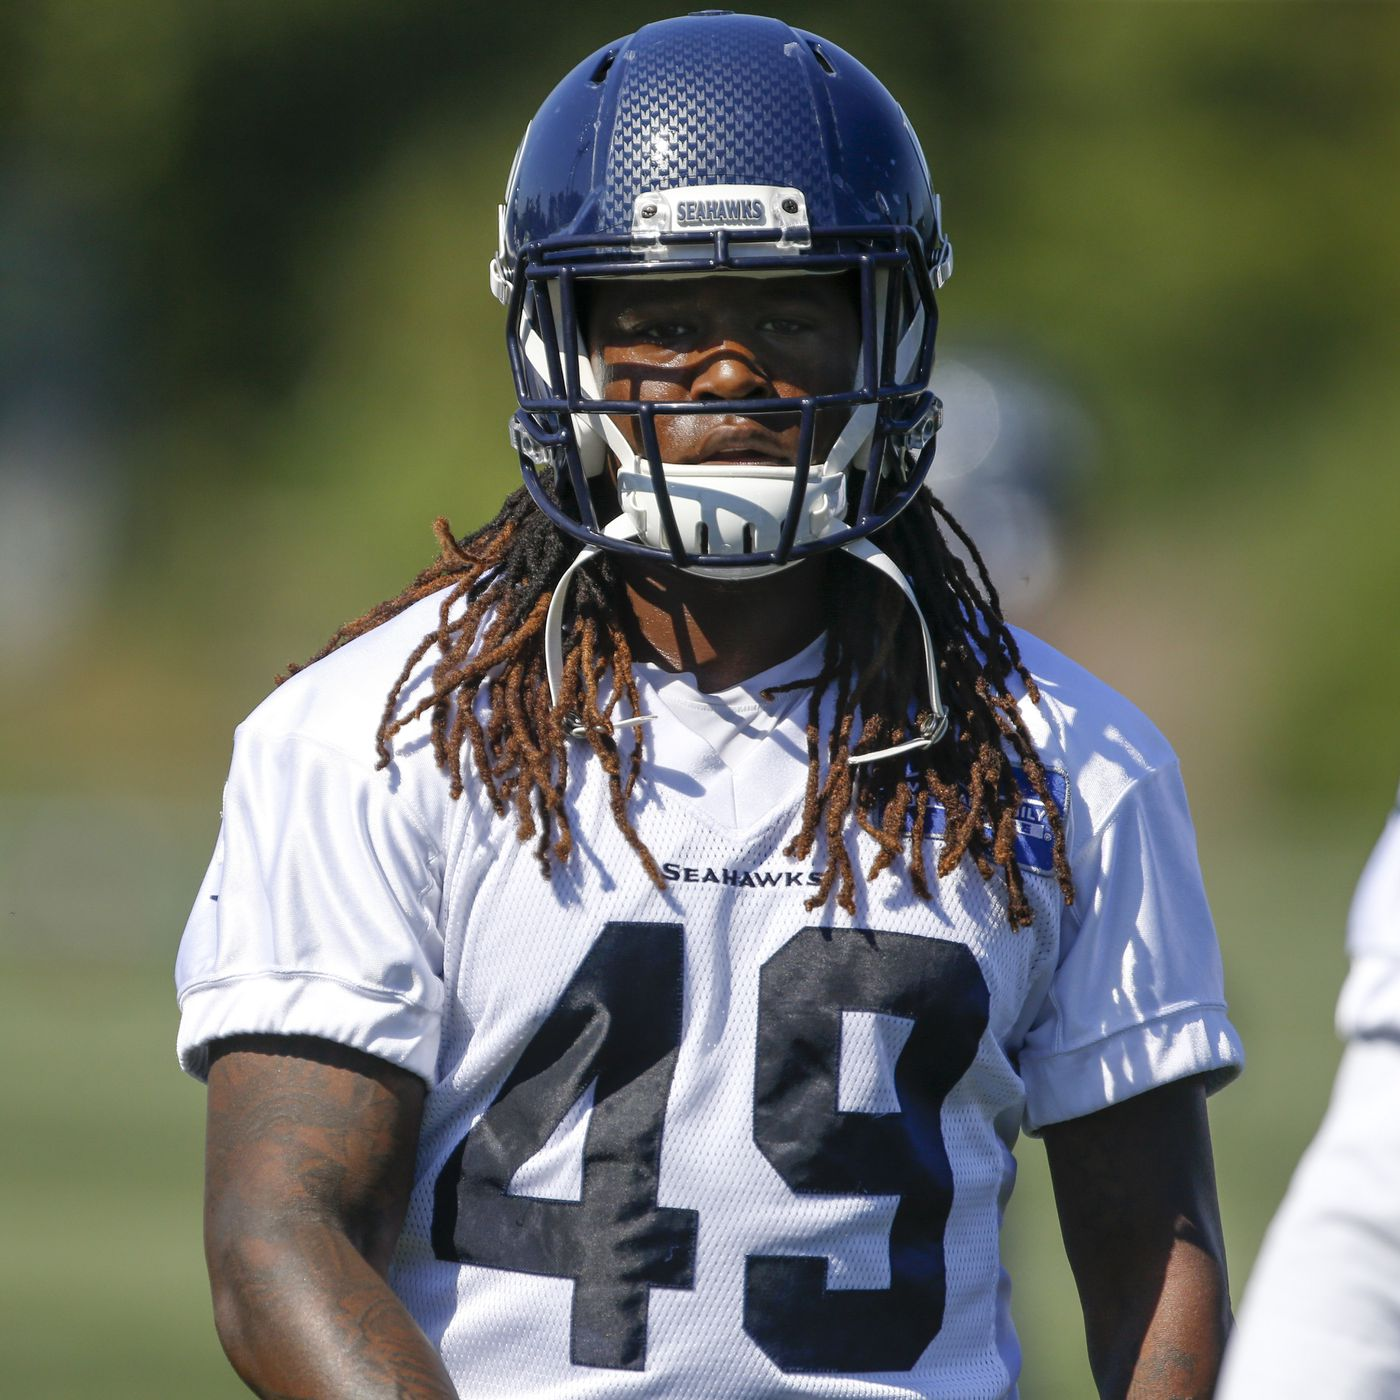 f11911d8a3b Seahawks training camp 2018  Storylines to follow after 2 days ...